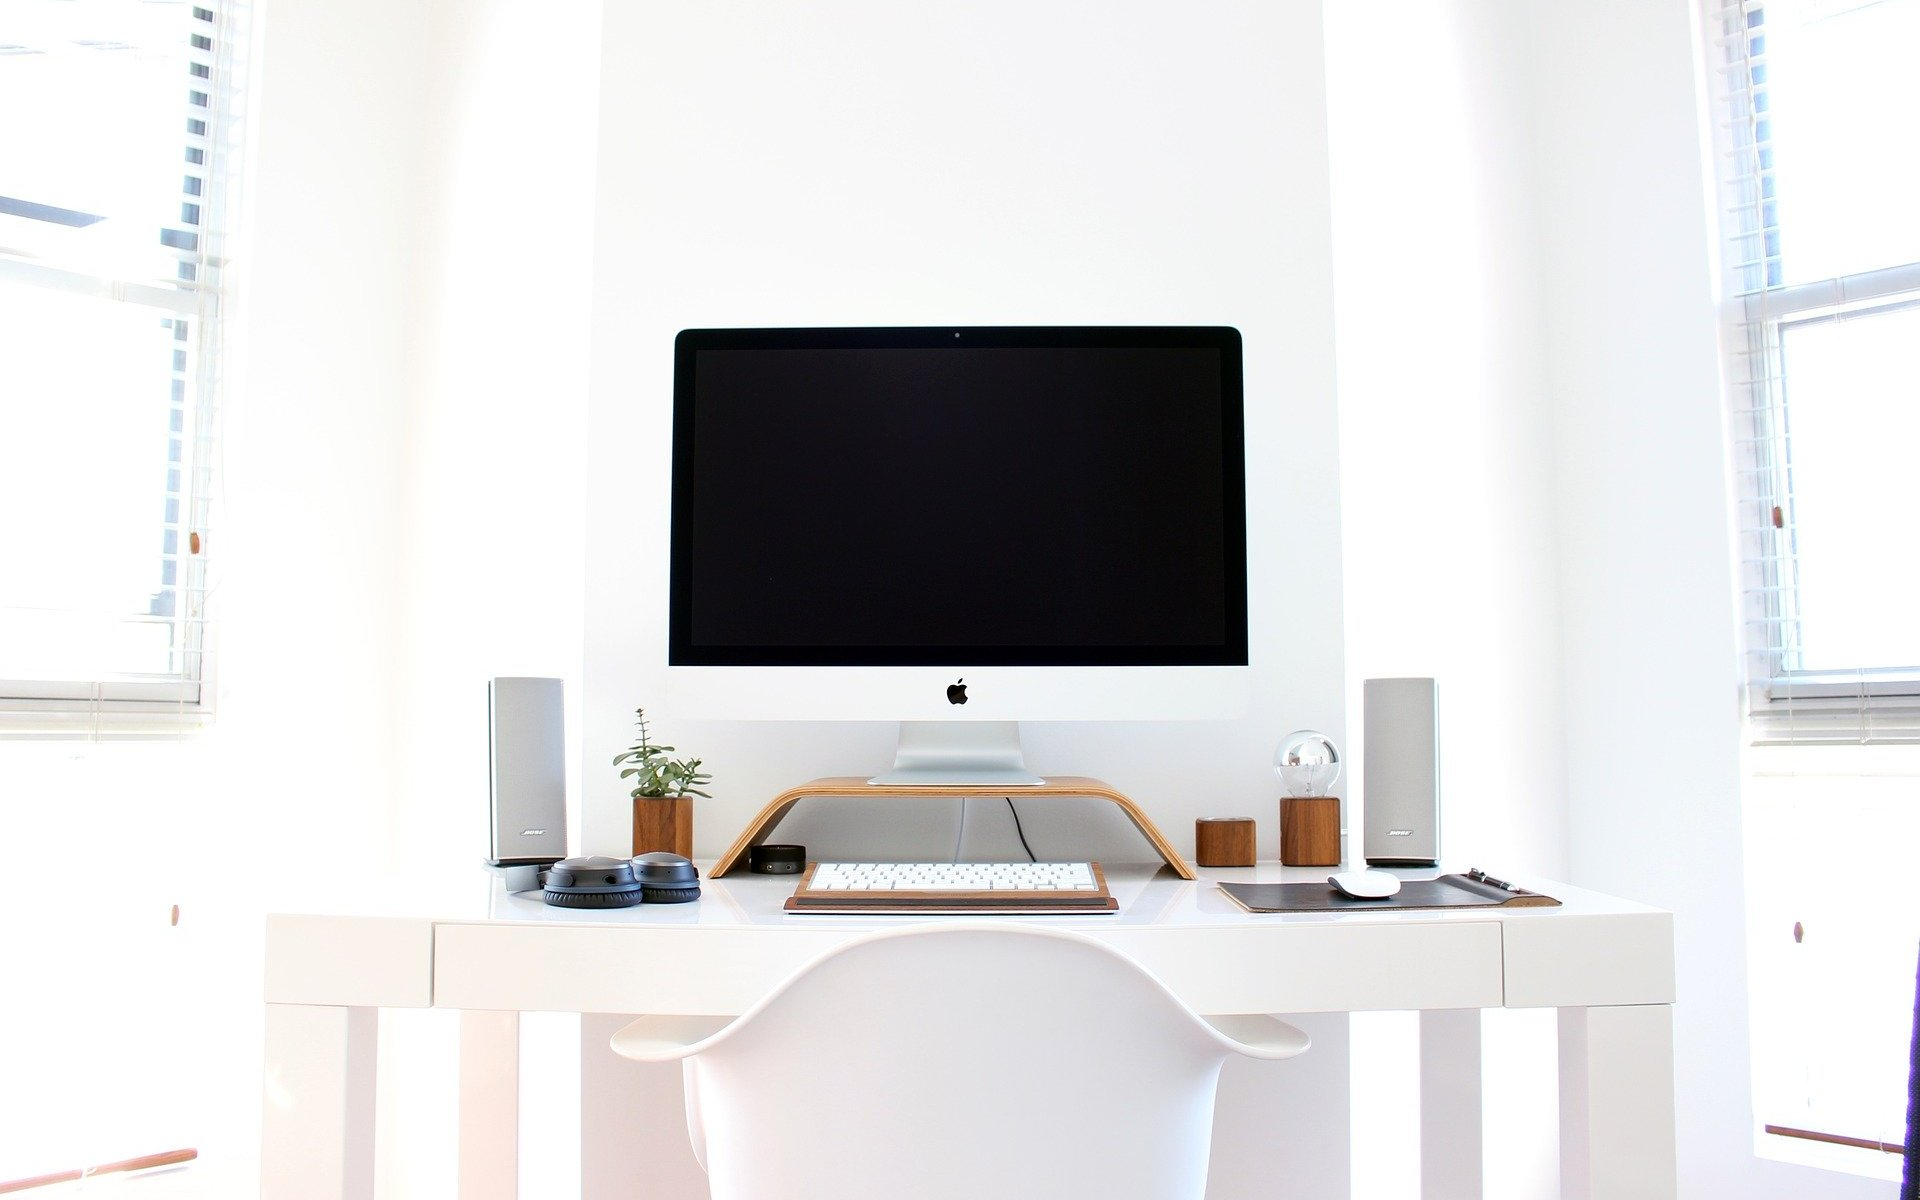 iMac computer on white desk in bright lit room